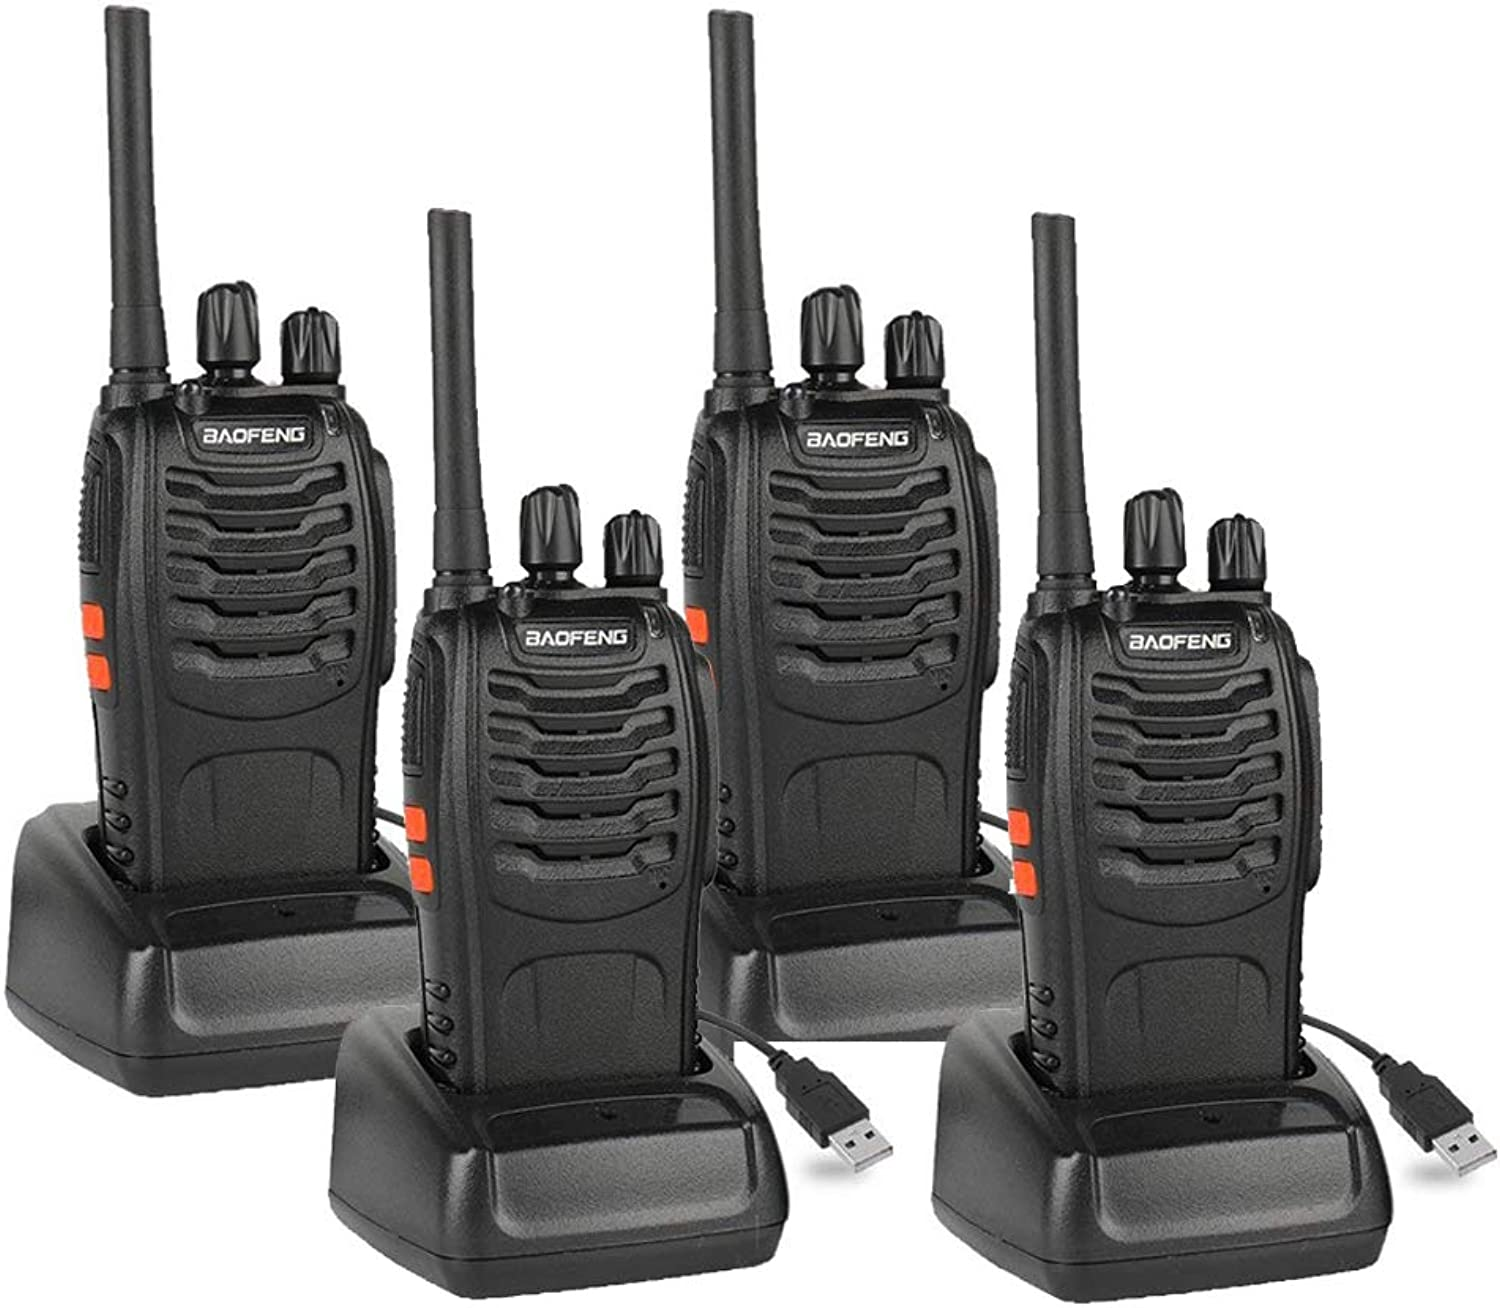 Baofeng BF88A FRS Radio Walkie Talkie 16Channel Rechargeable Two Way Radio with Earpiece, LED Flashlight and USB Charger, 4 Pack